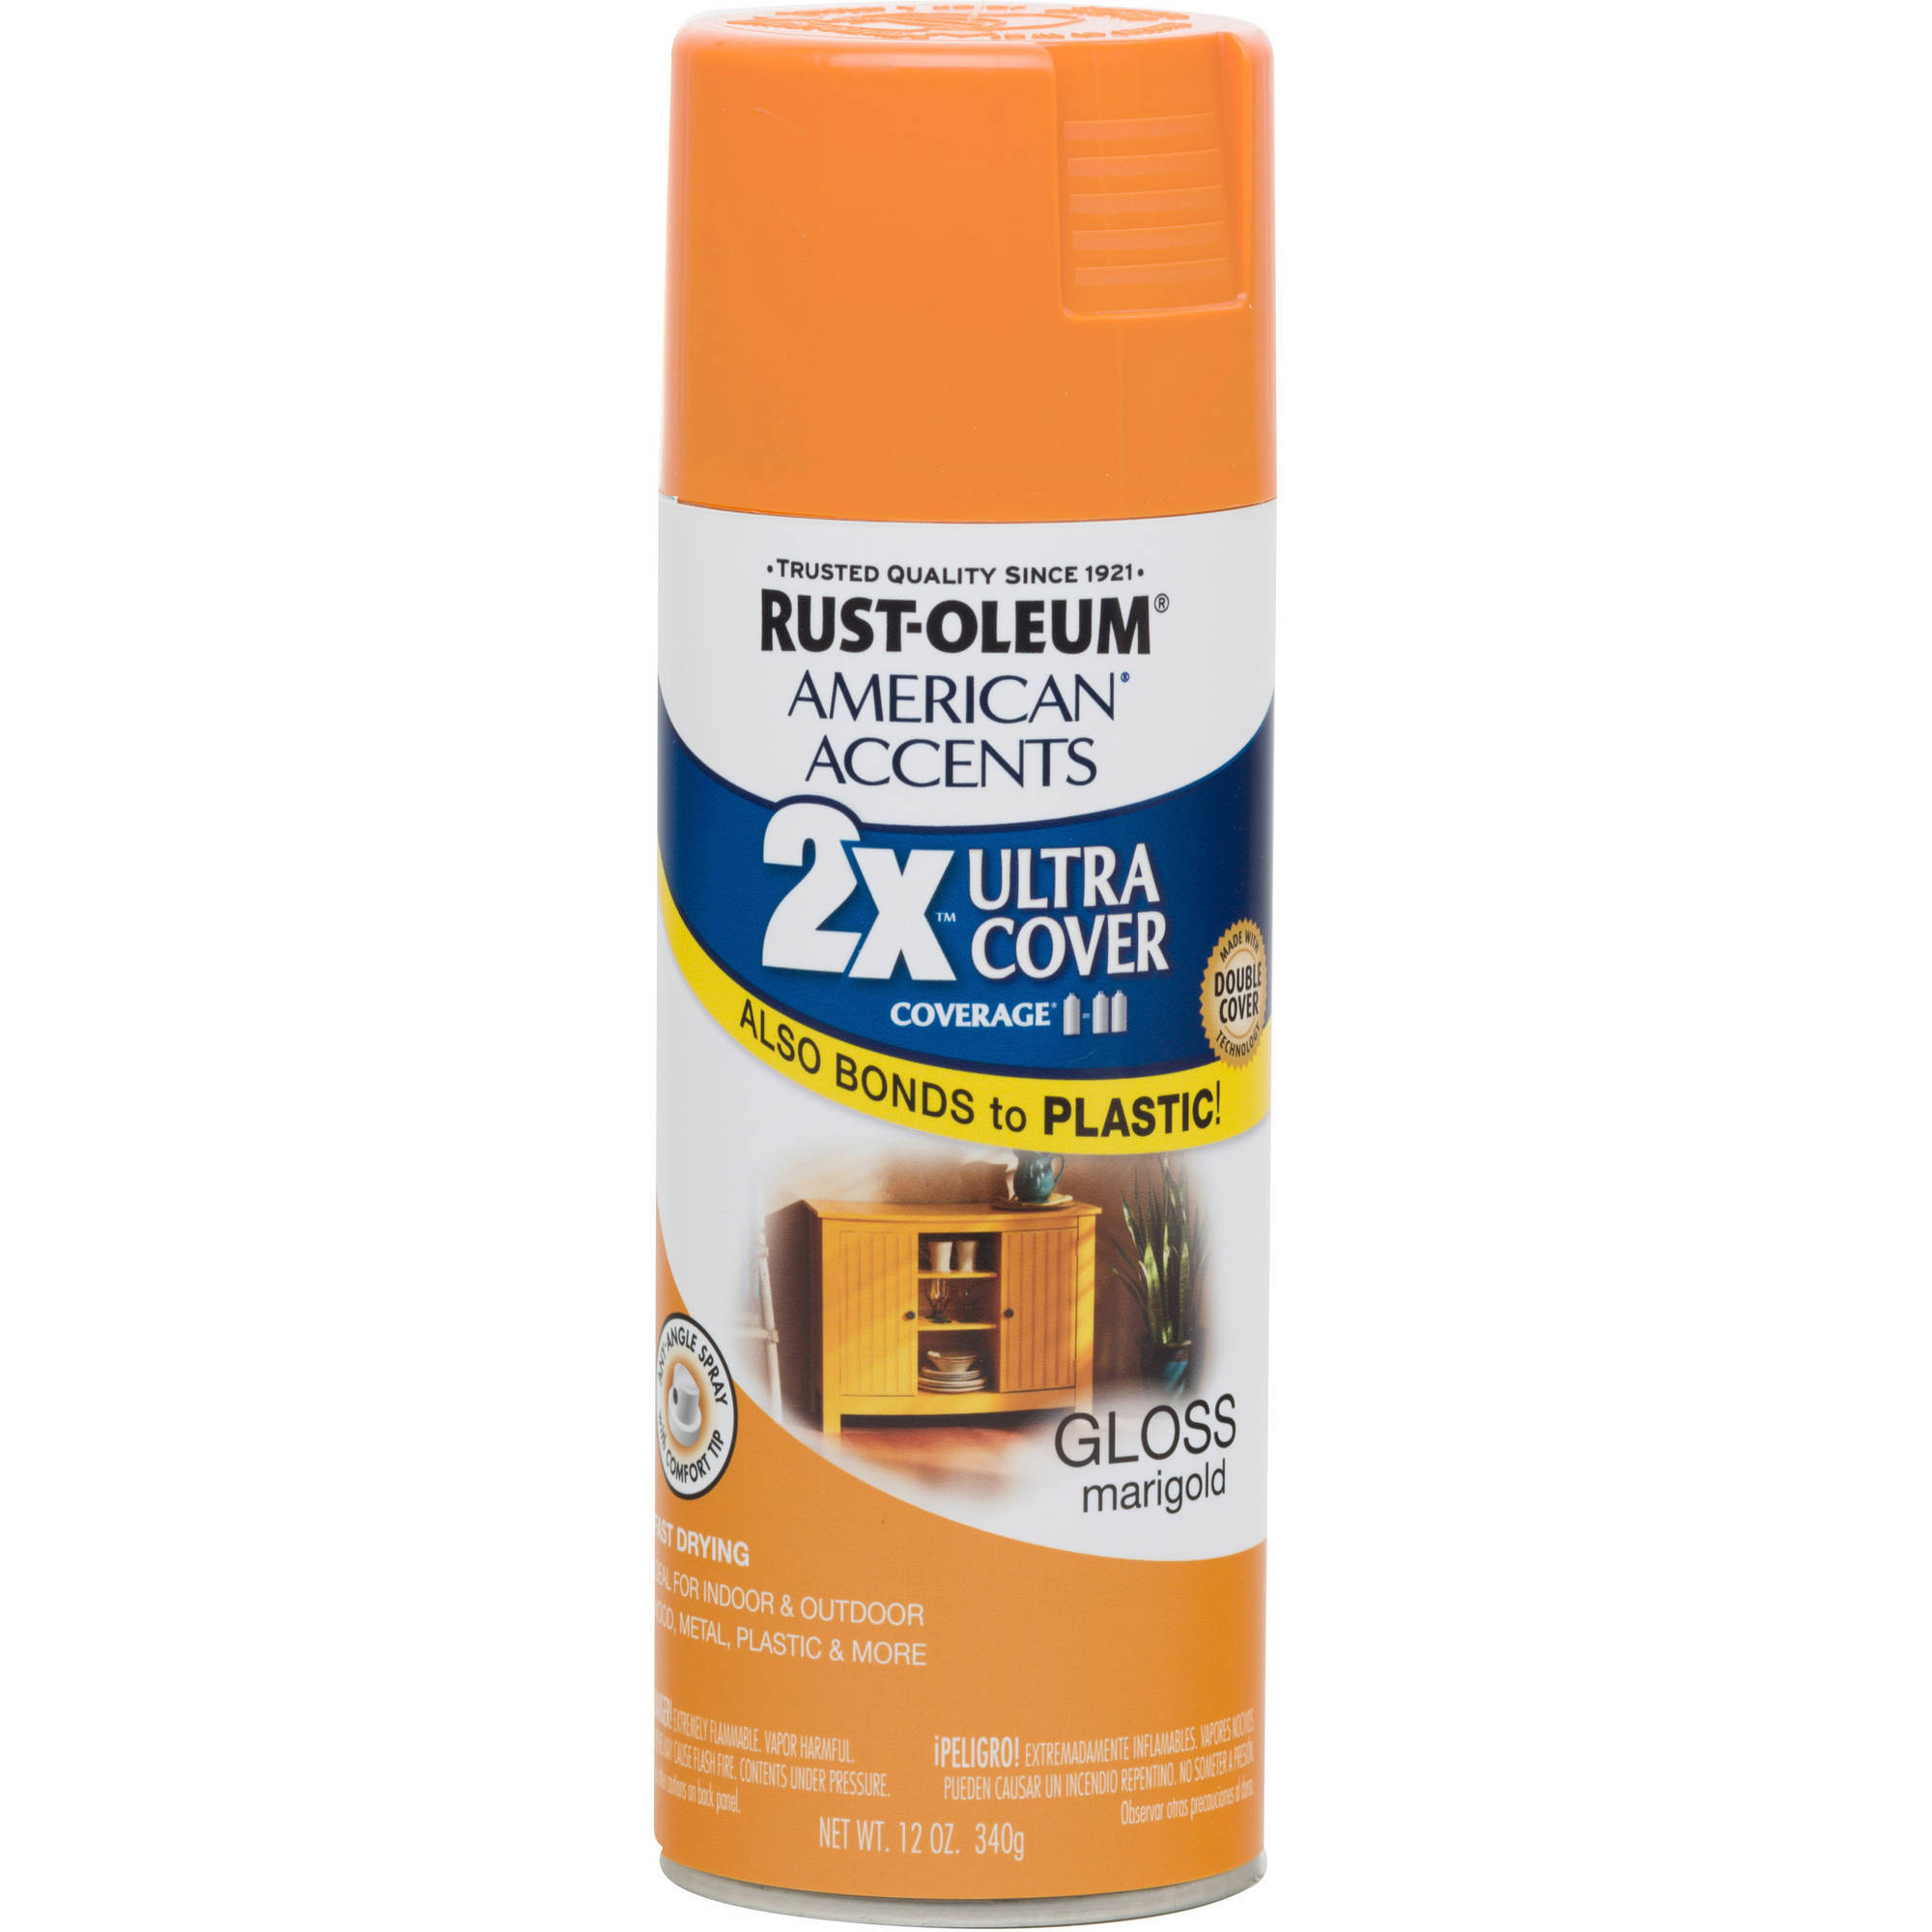 Rust-Oleum American Accents Ultra Cover 2X Gloss Marigold Spray Paint and Primer in 1, 12 oz